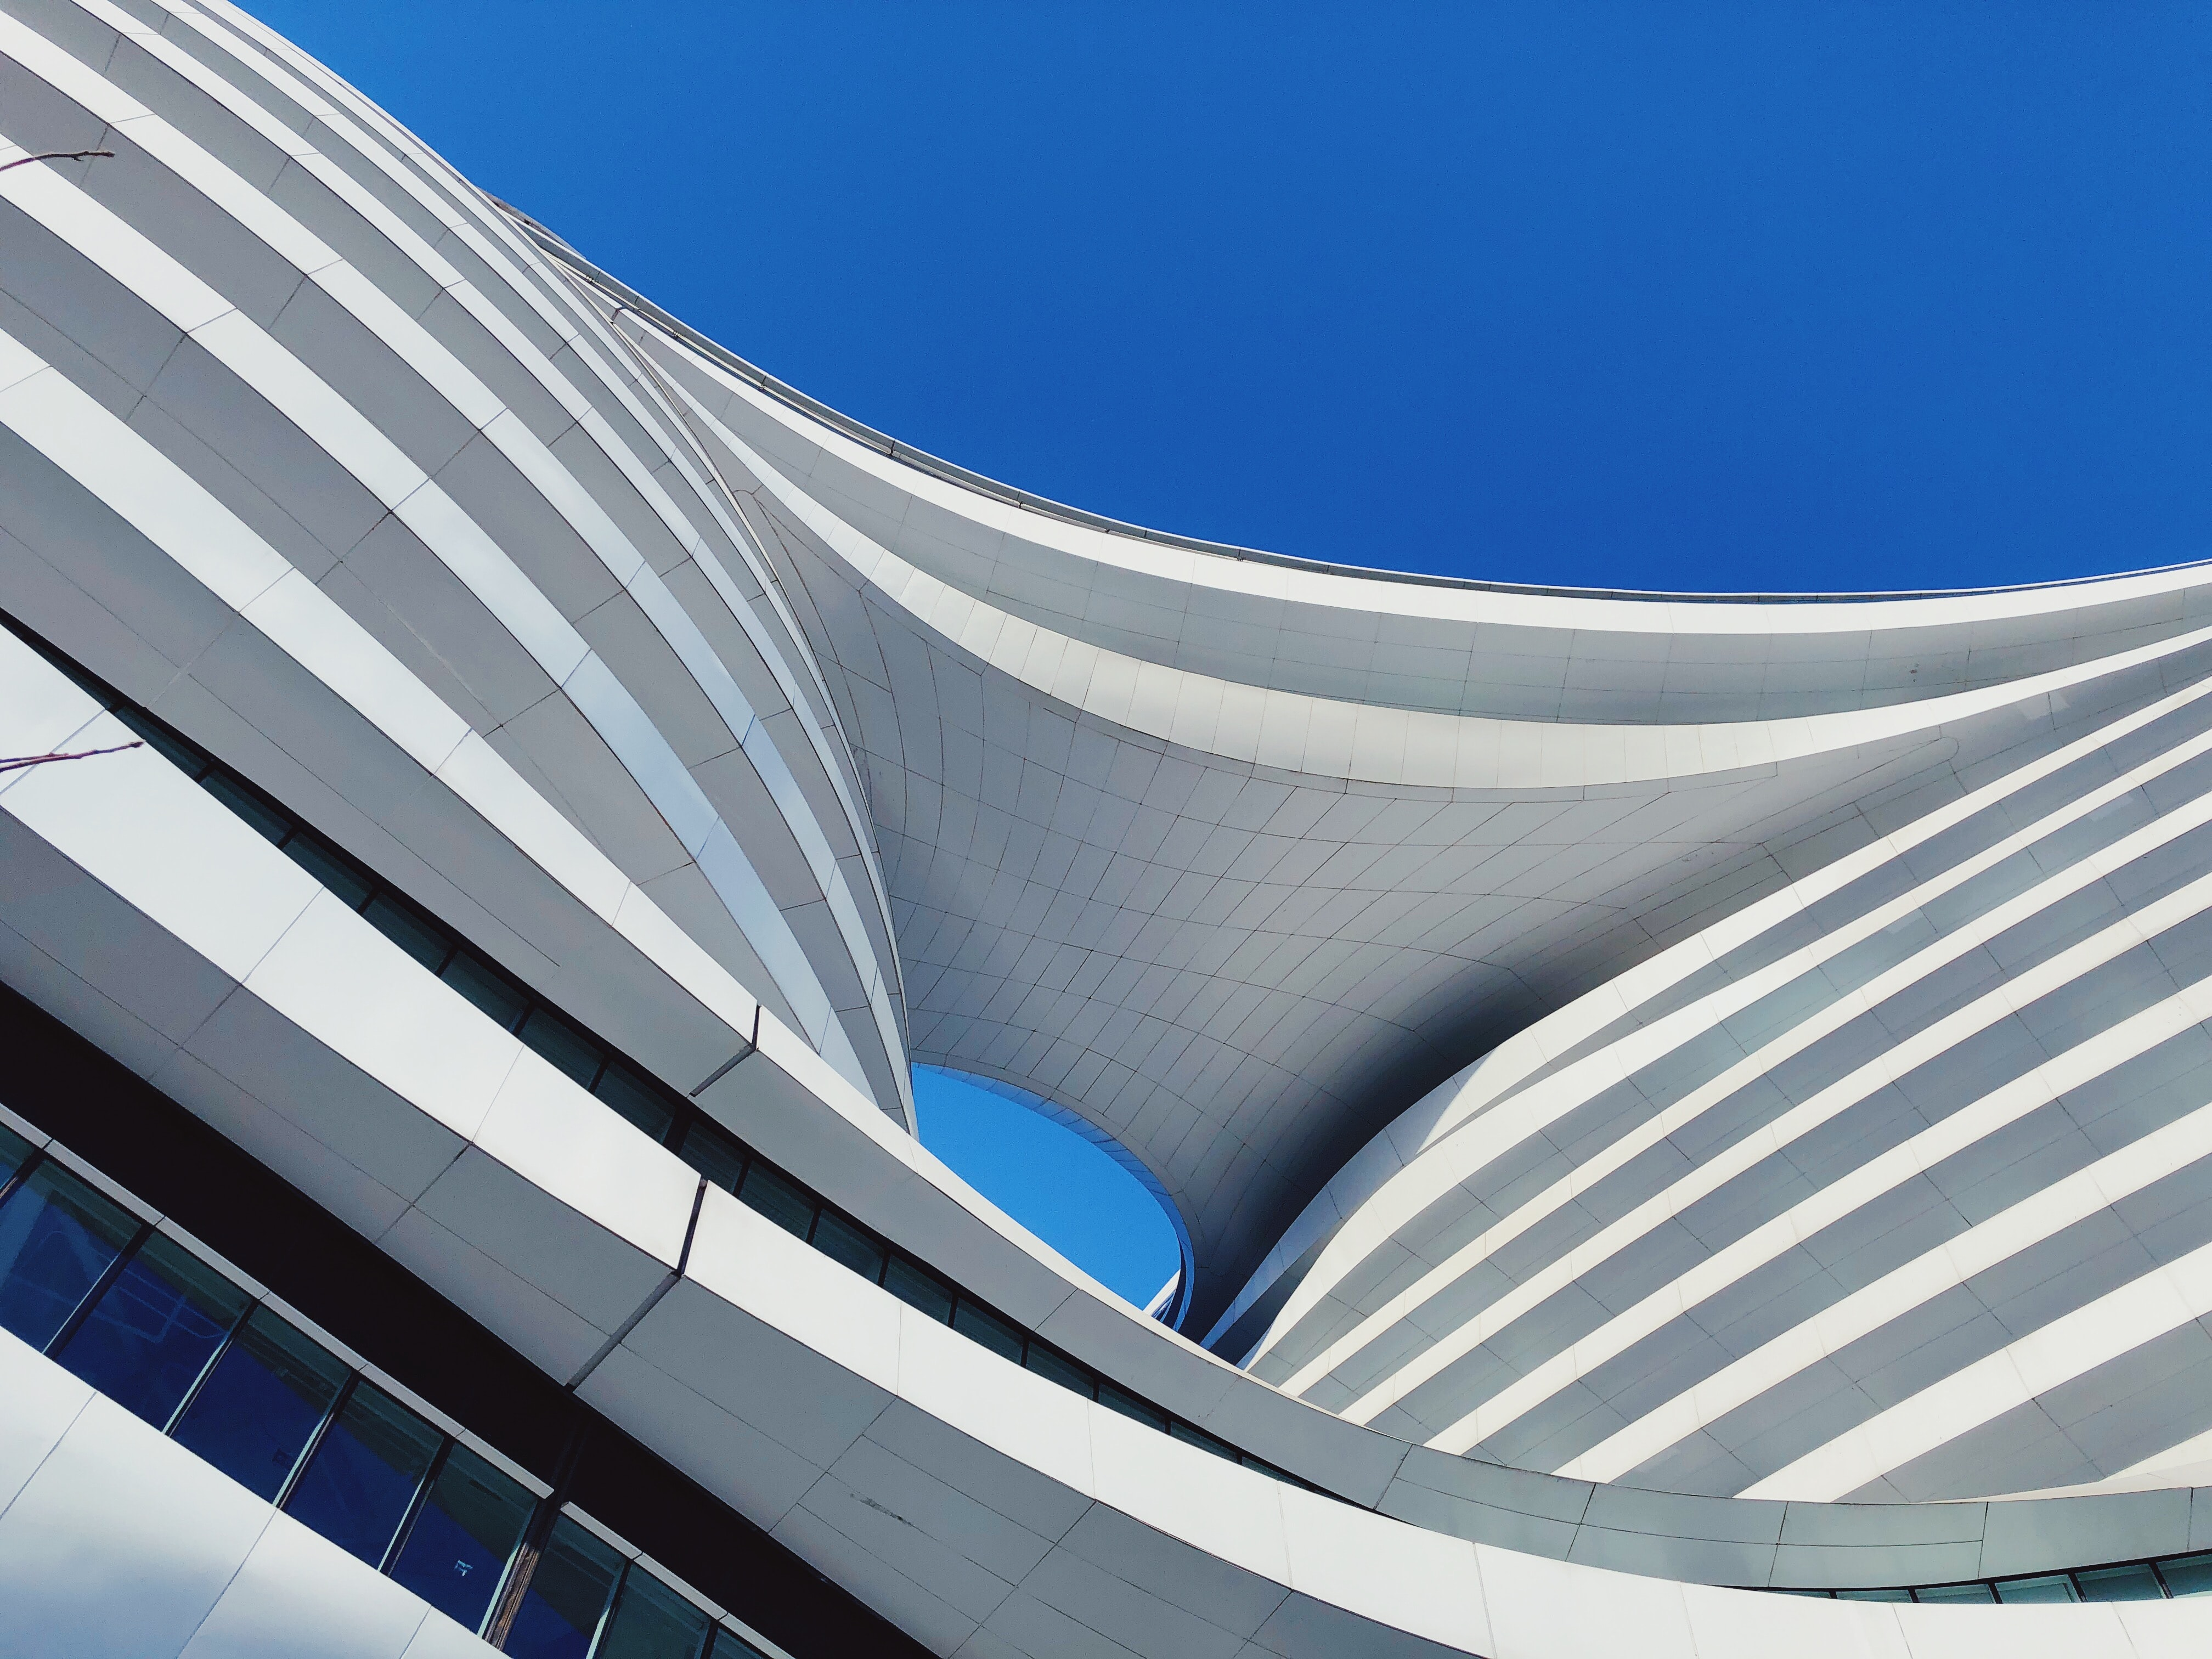 low angle photography of building under blue sky